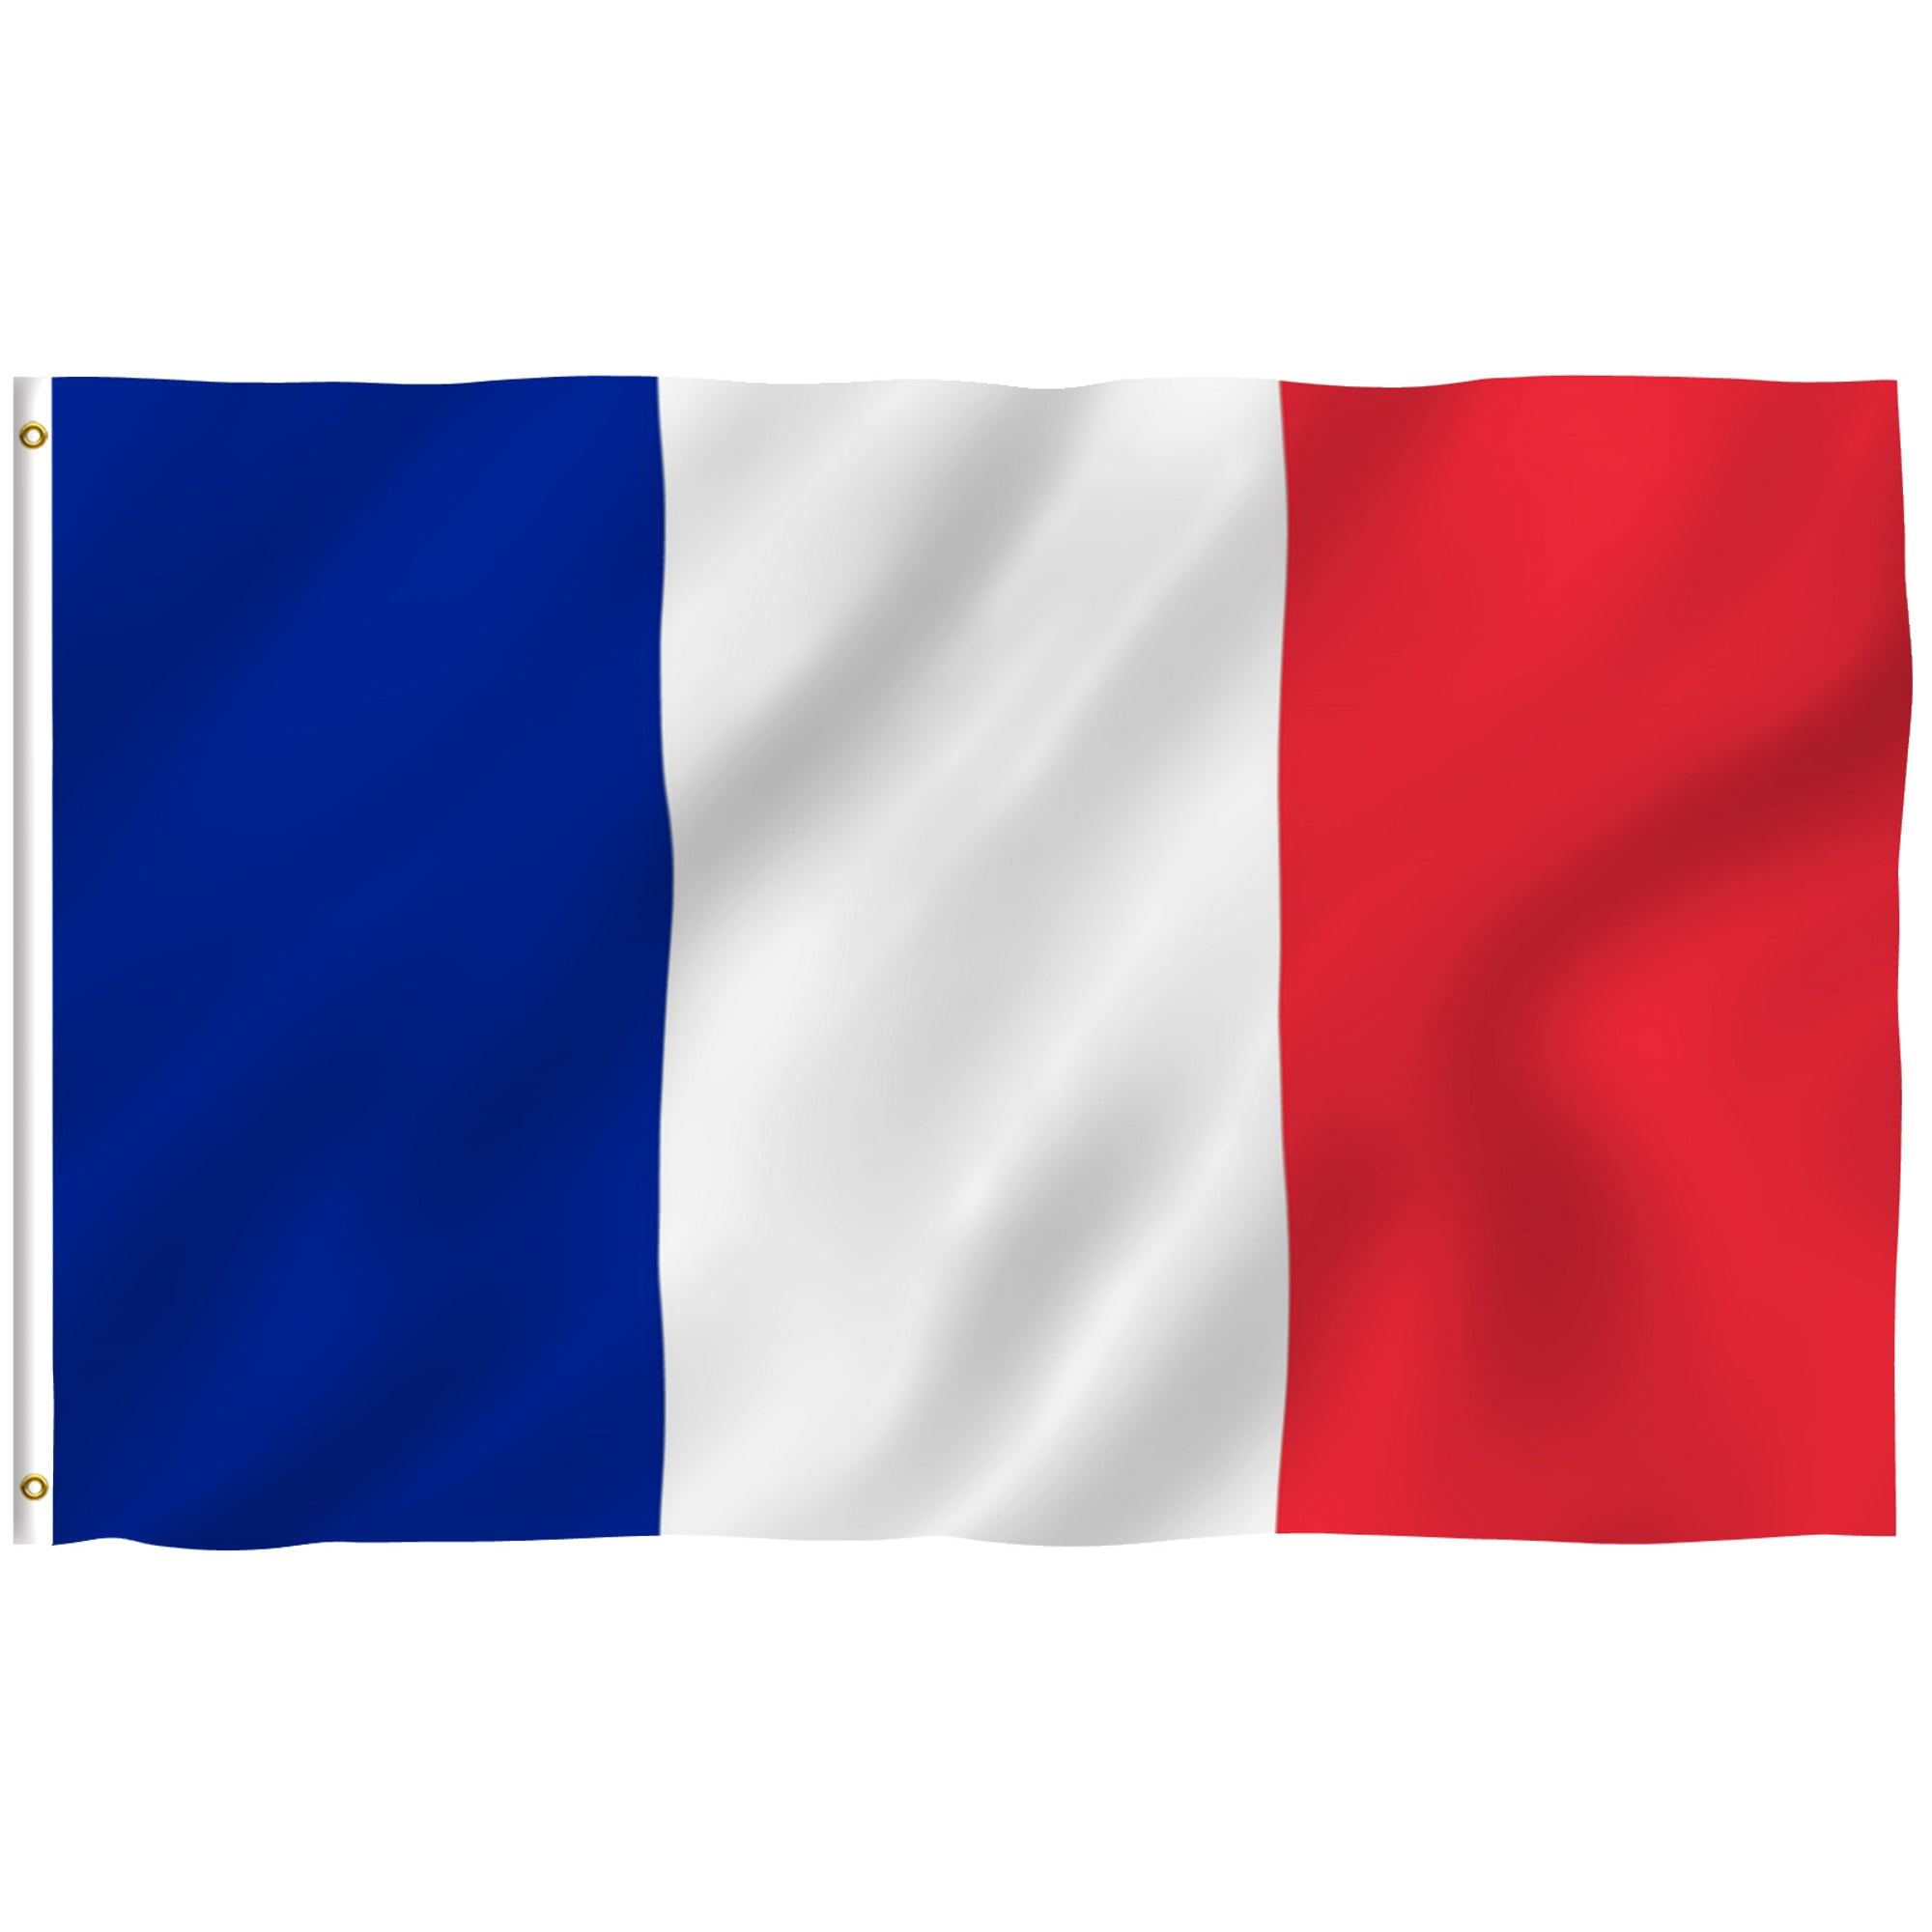 ANLEY [Fly Breeze] 3x5 Feet French Flag Vivid Color and UV Fade Resistant Canvas... by ANLEY